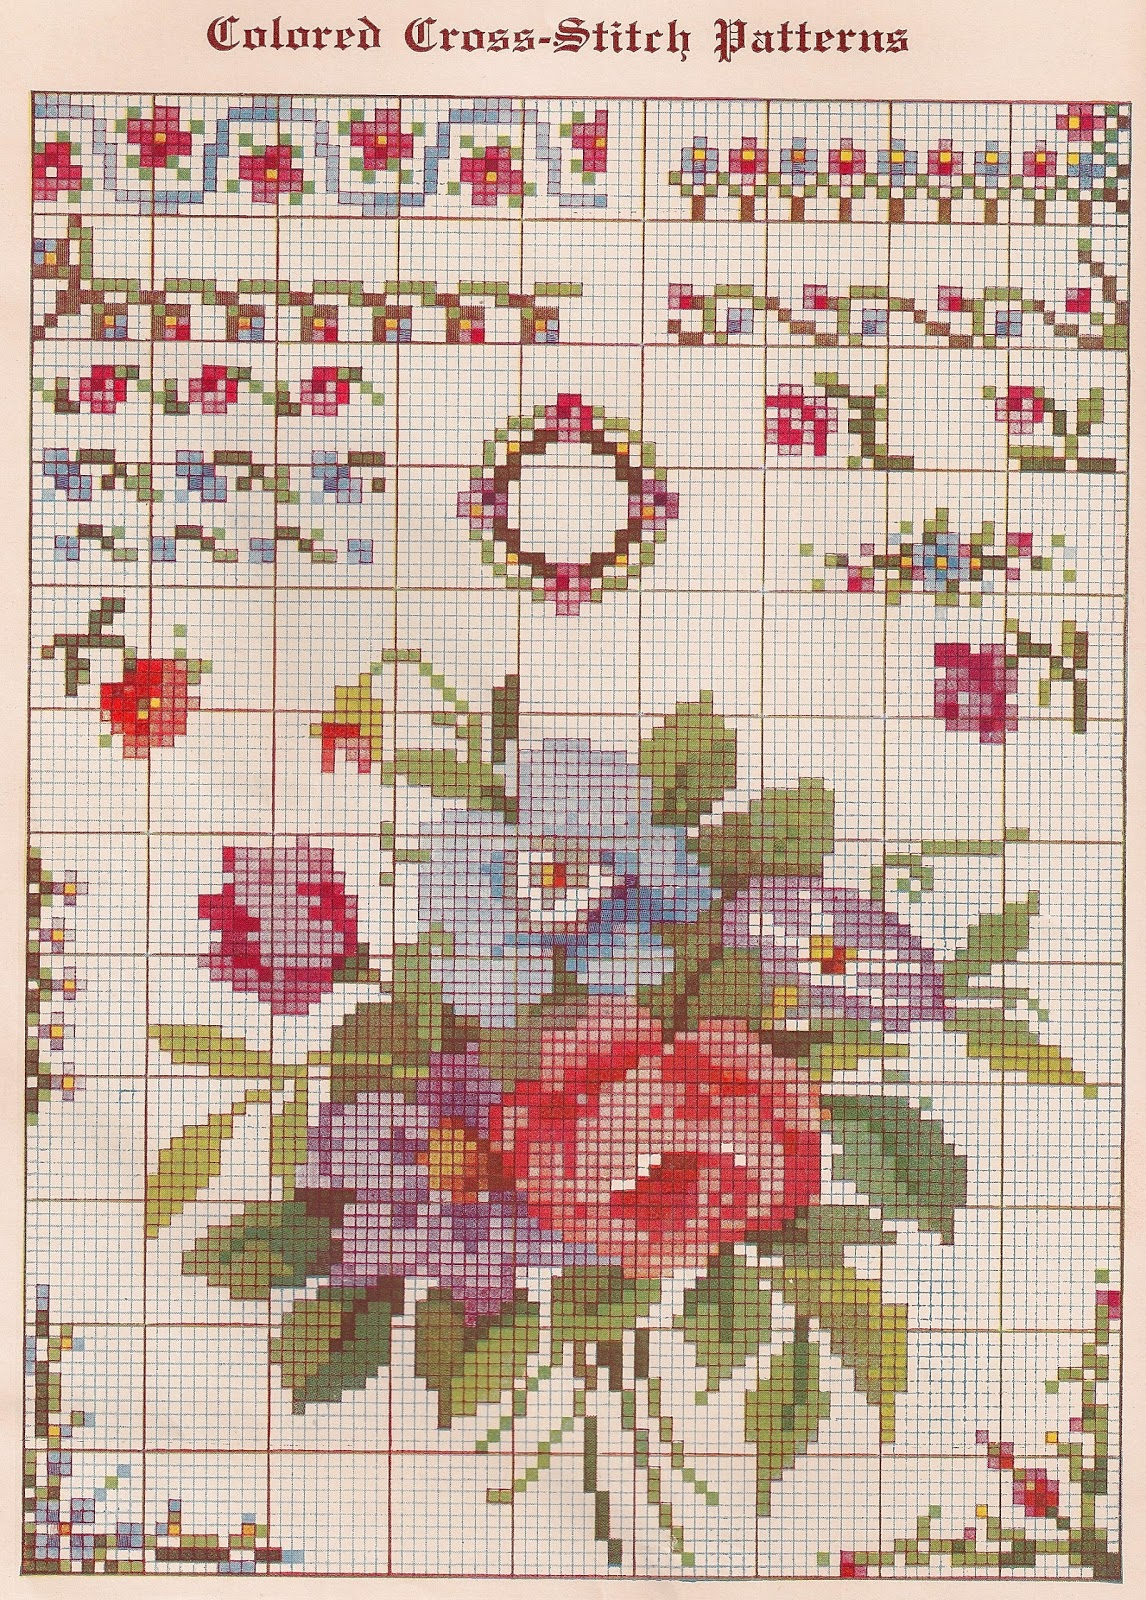 Stupendous image in printable cross stitch patterns